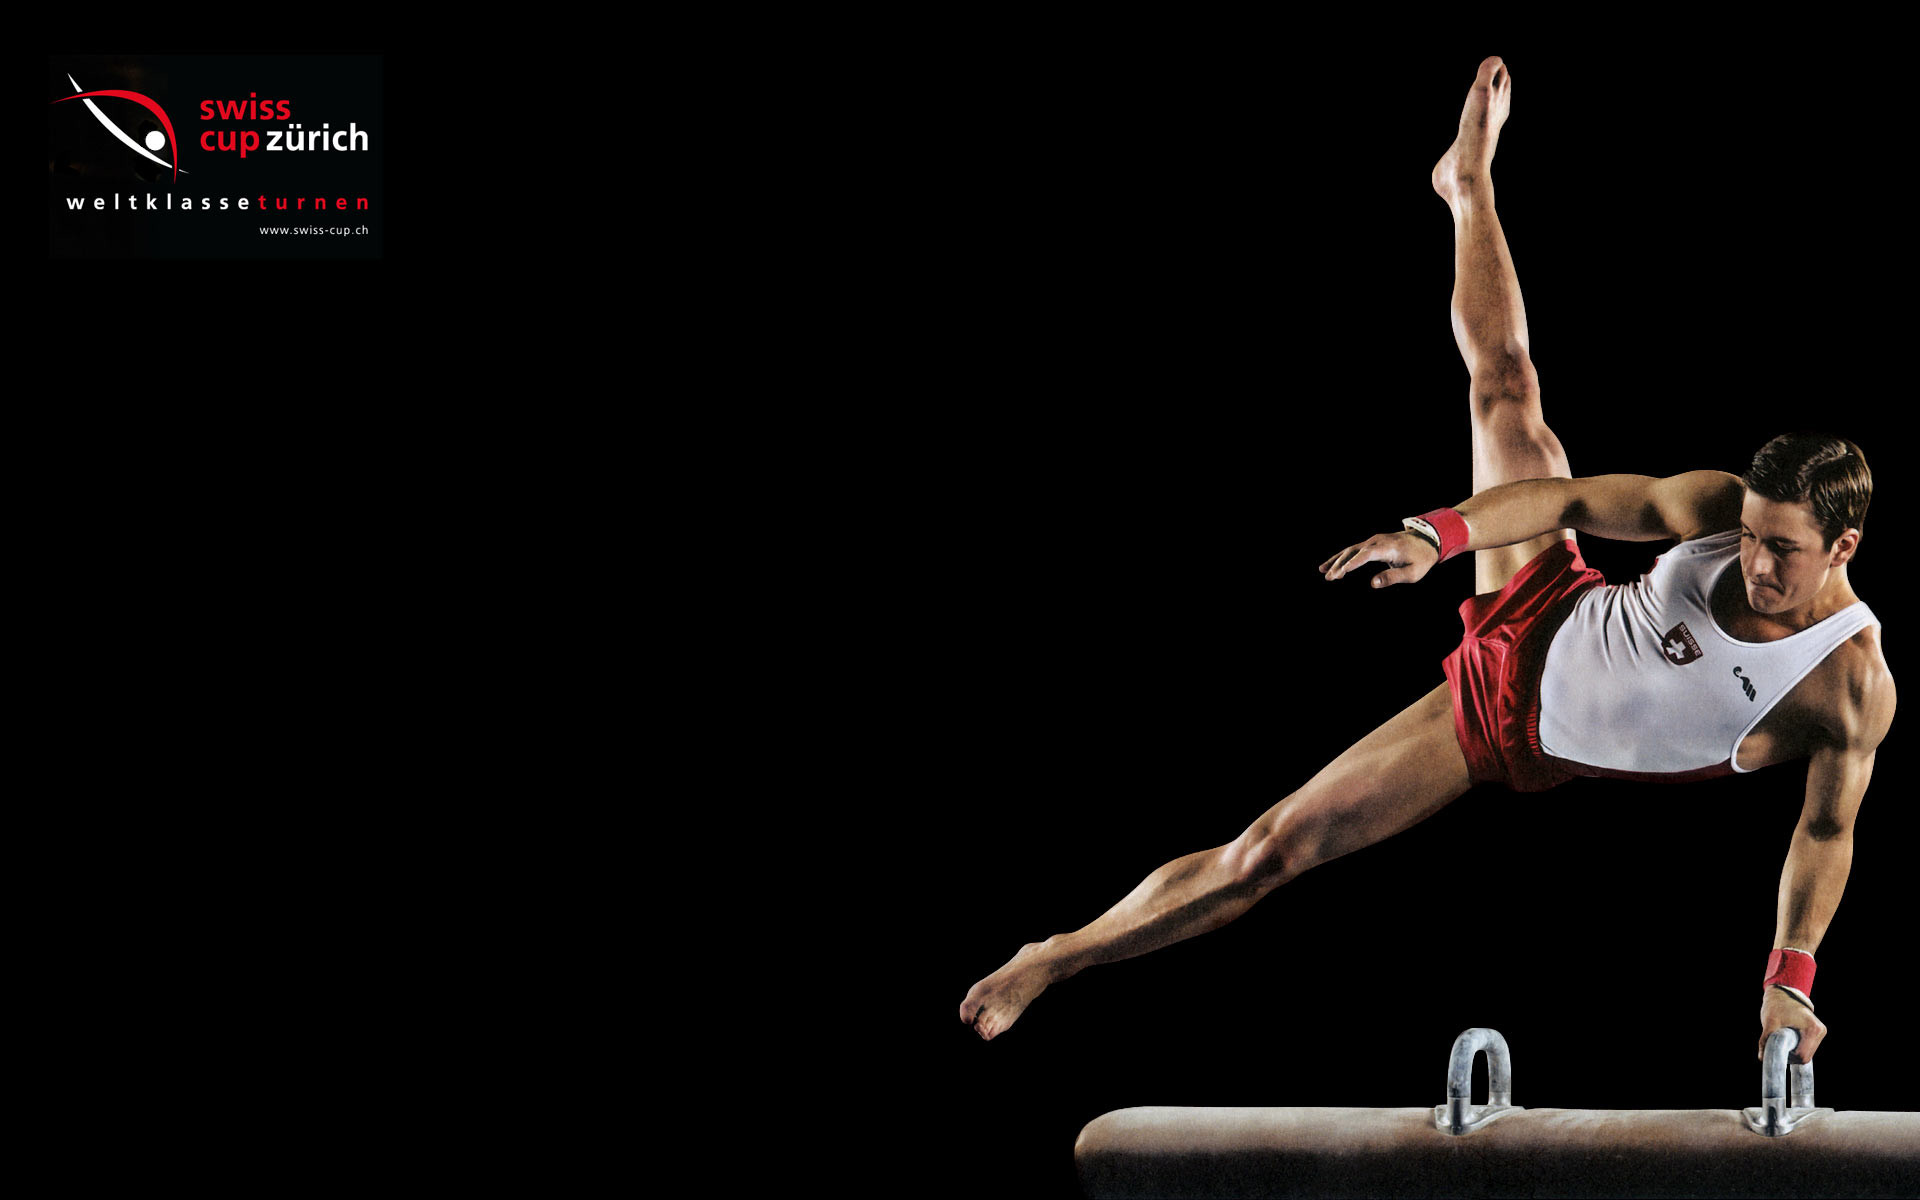 1920x1200 New Gymnastics Backgrounds Wallpapers All HD Wallpapers Gymnastics Pictures Wallpapers  Wallpapers)